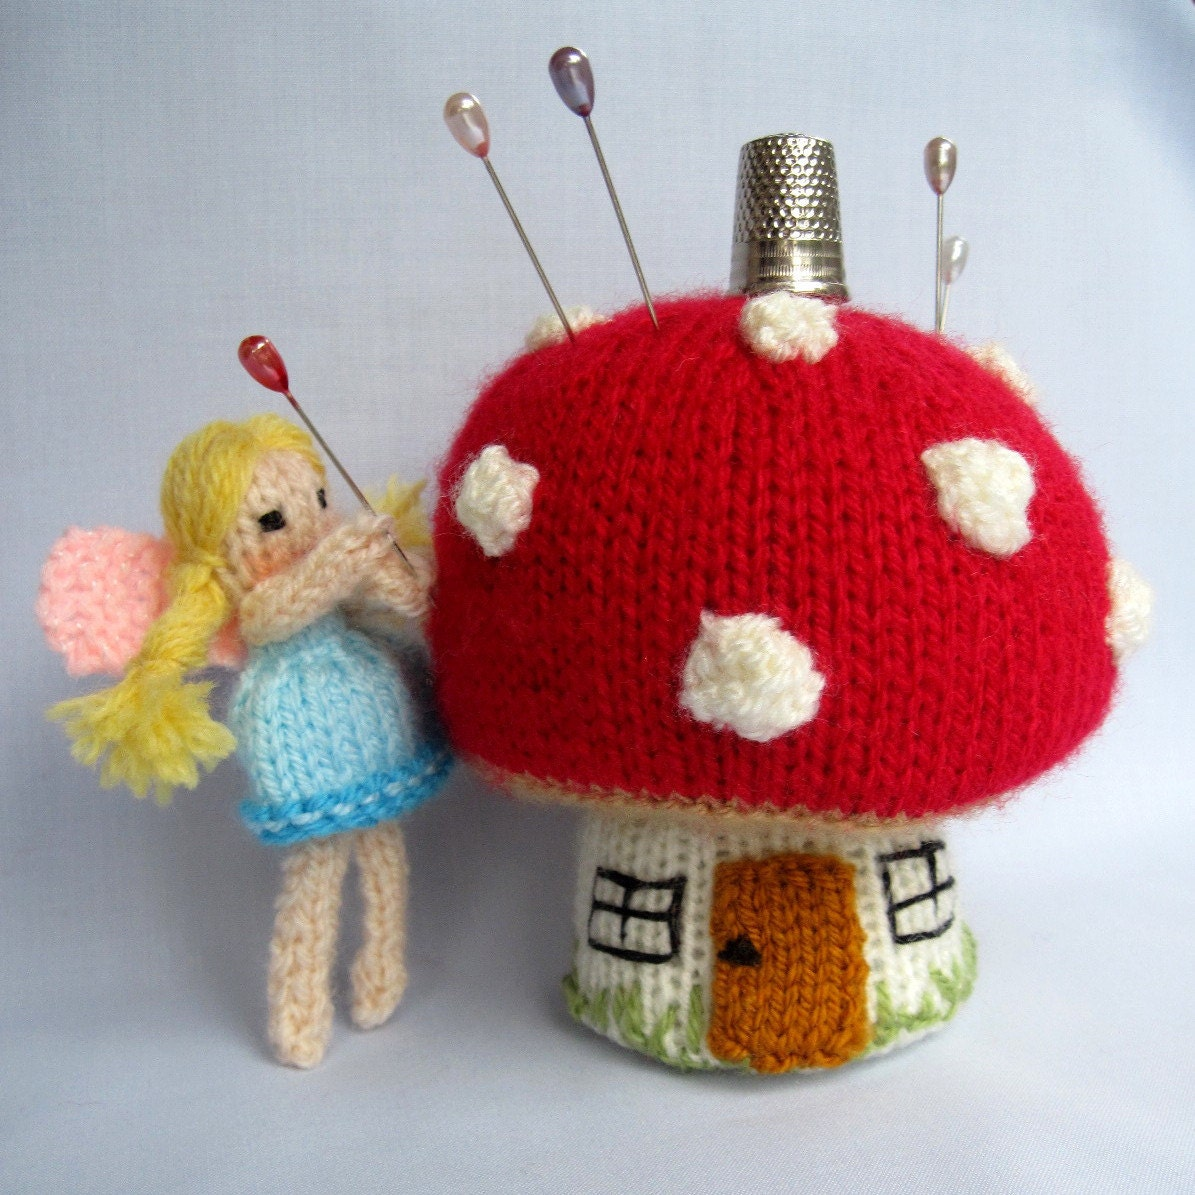 Toadstool Pincushion and Fairy pinkeep knitting pattern